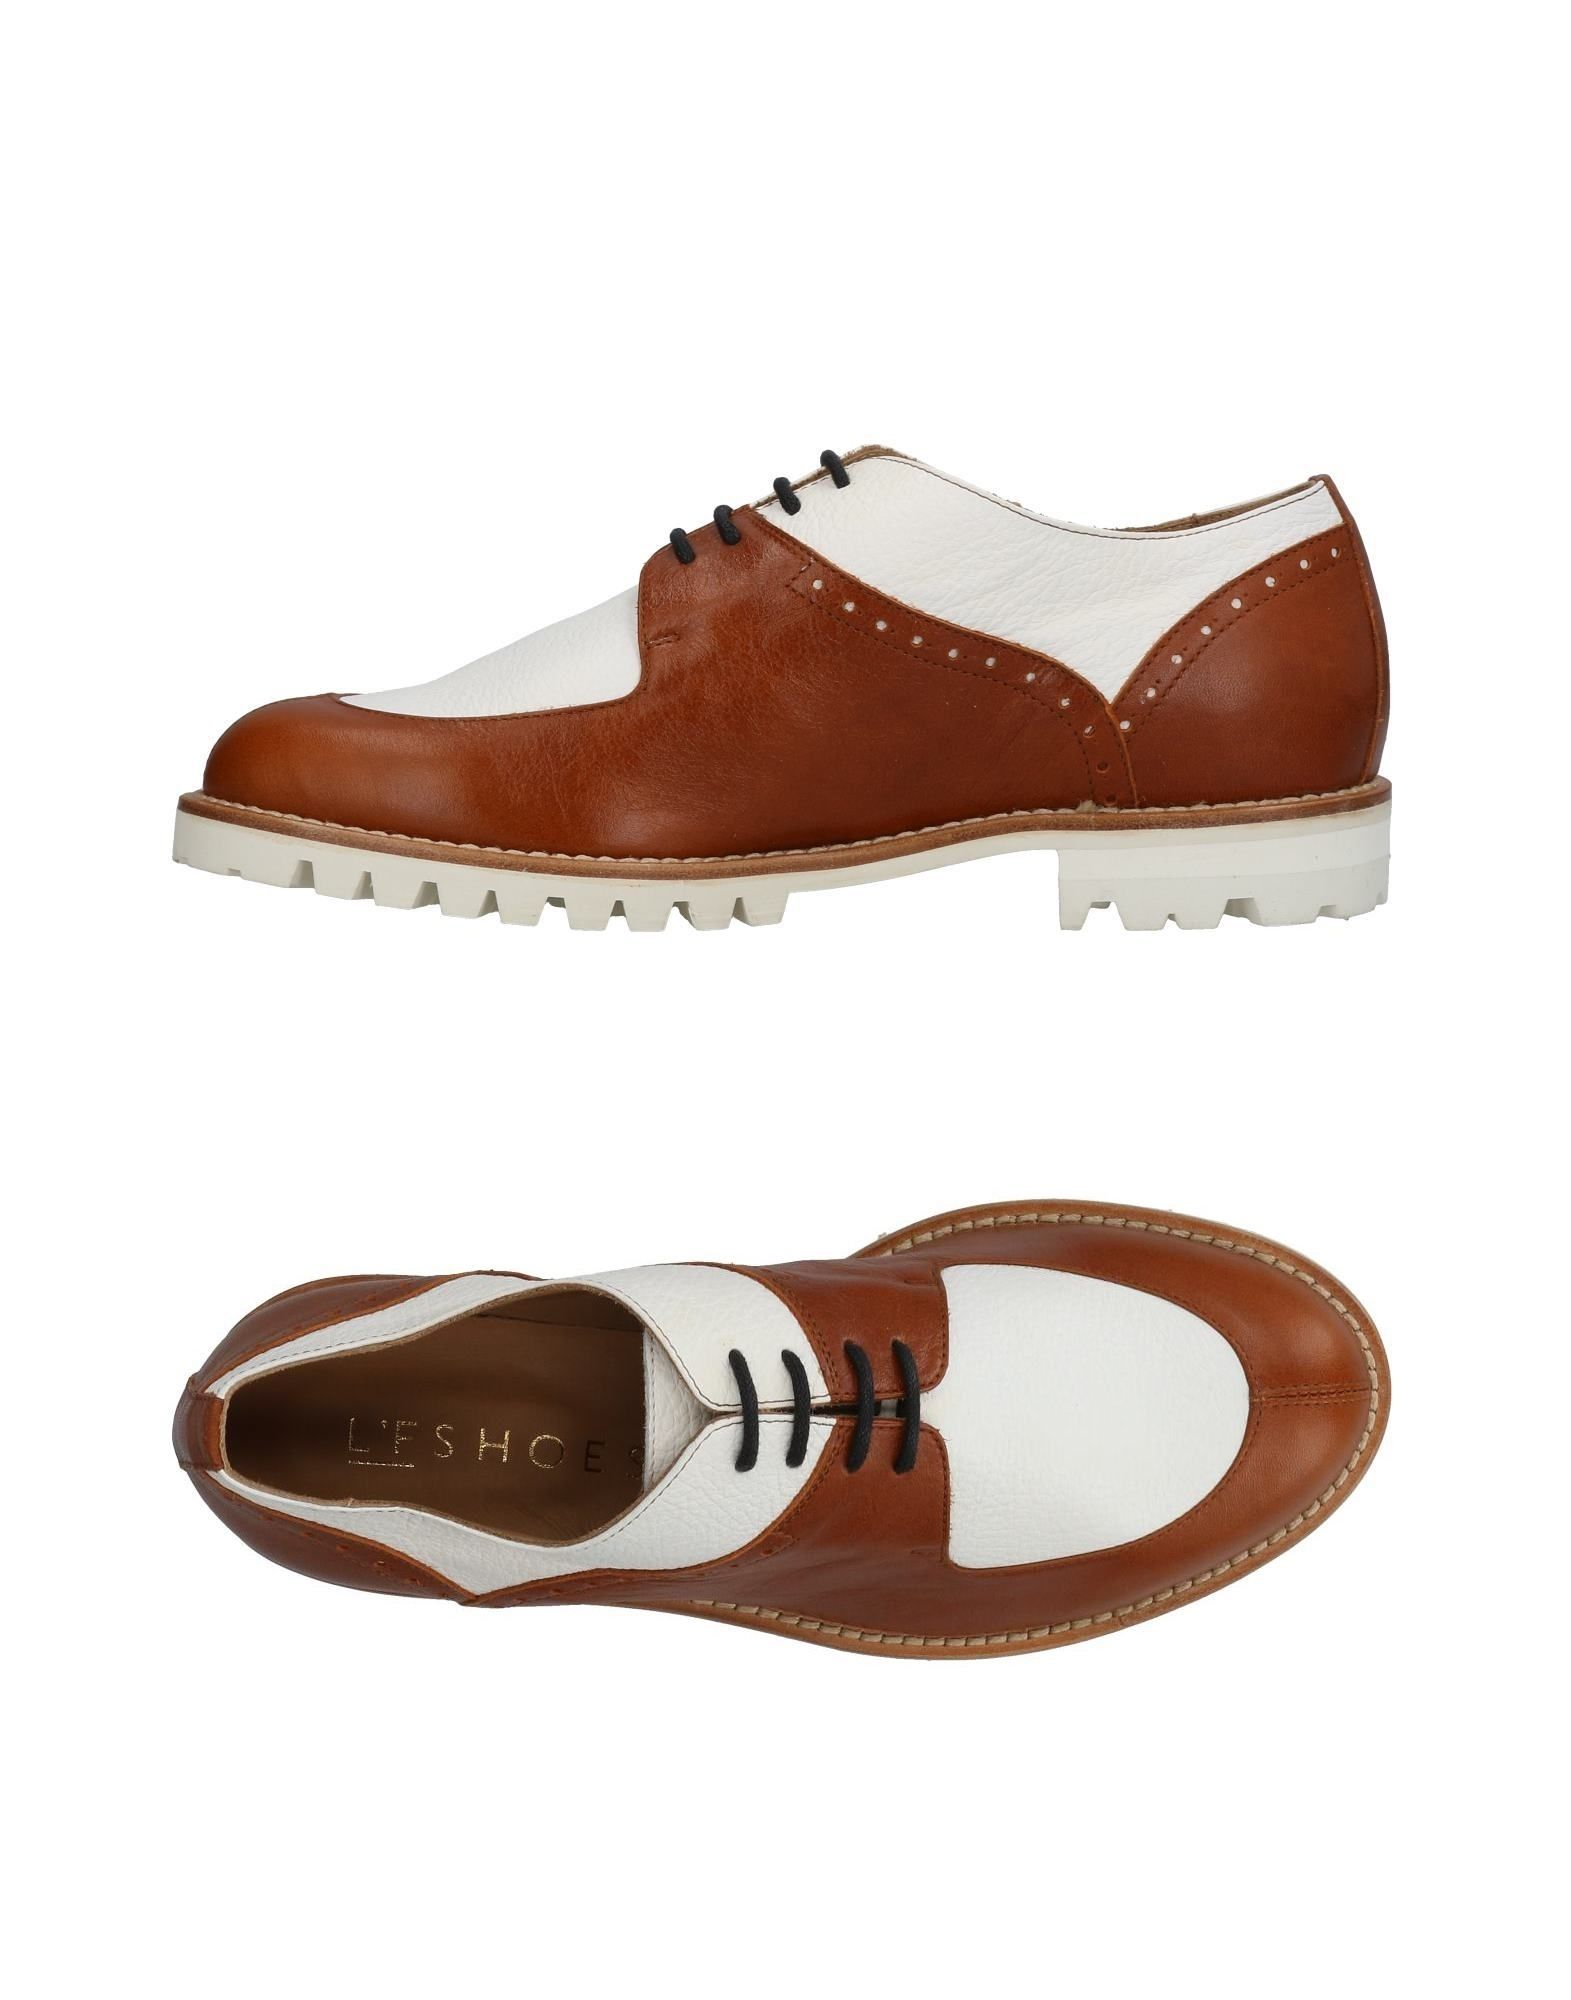 c084b64358 Stringate L'f Shoes - 11448930KS Uomo ntxagp619-L'F SHOES - balletto ...